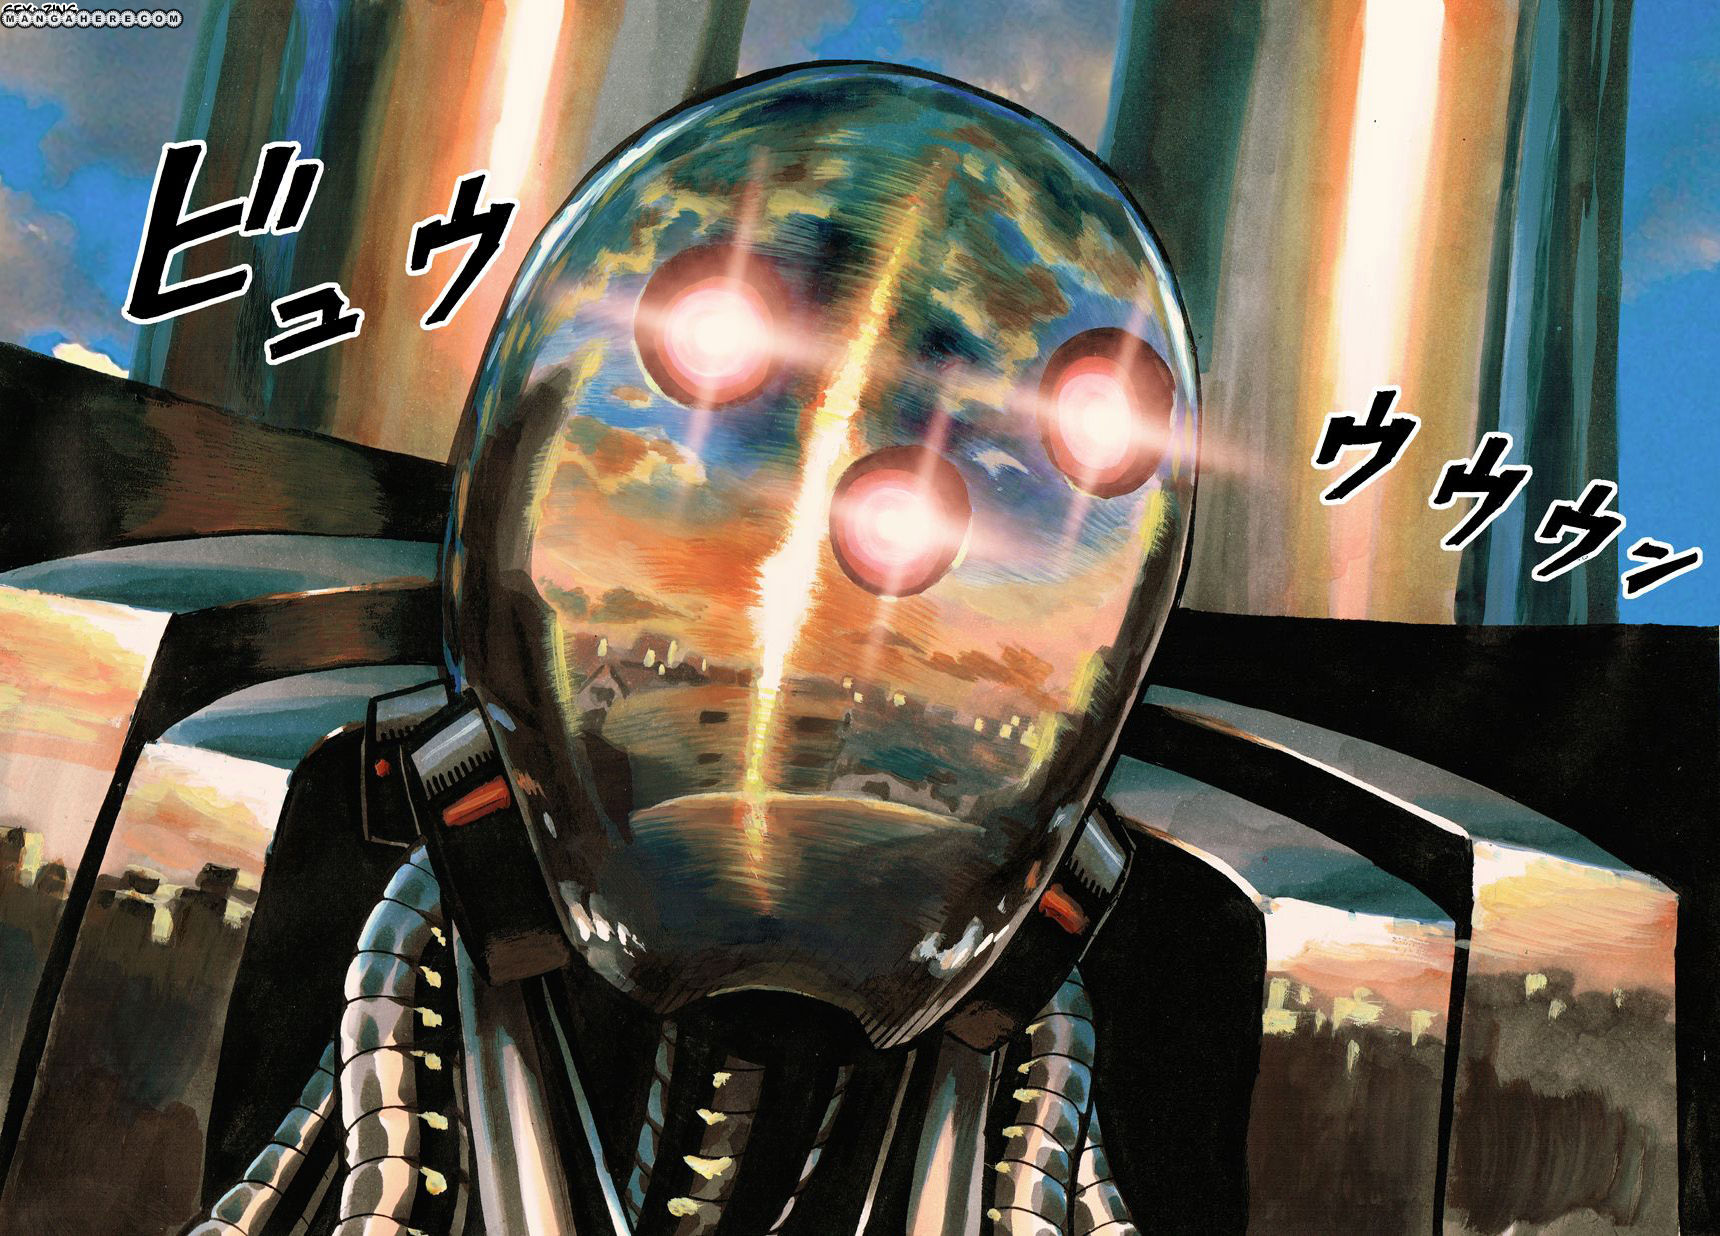 Onepunch-Man - Chapter 29